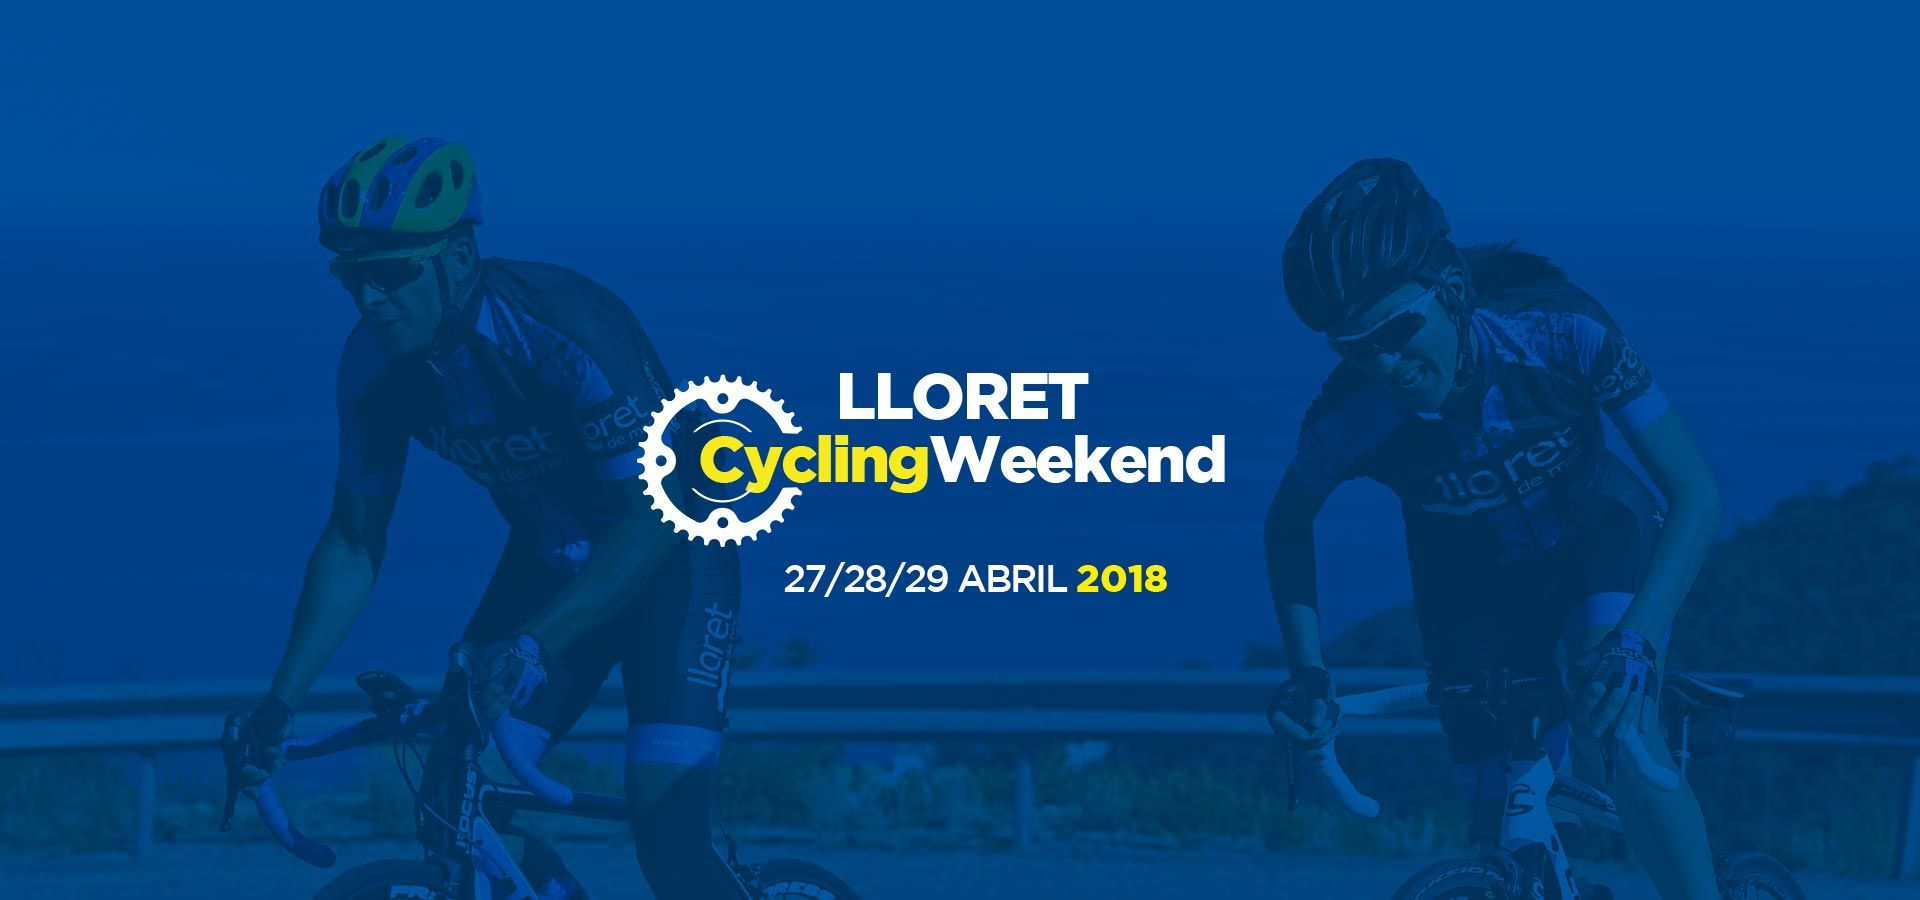 Lloret Cycling Weekend 2018